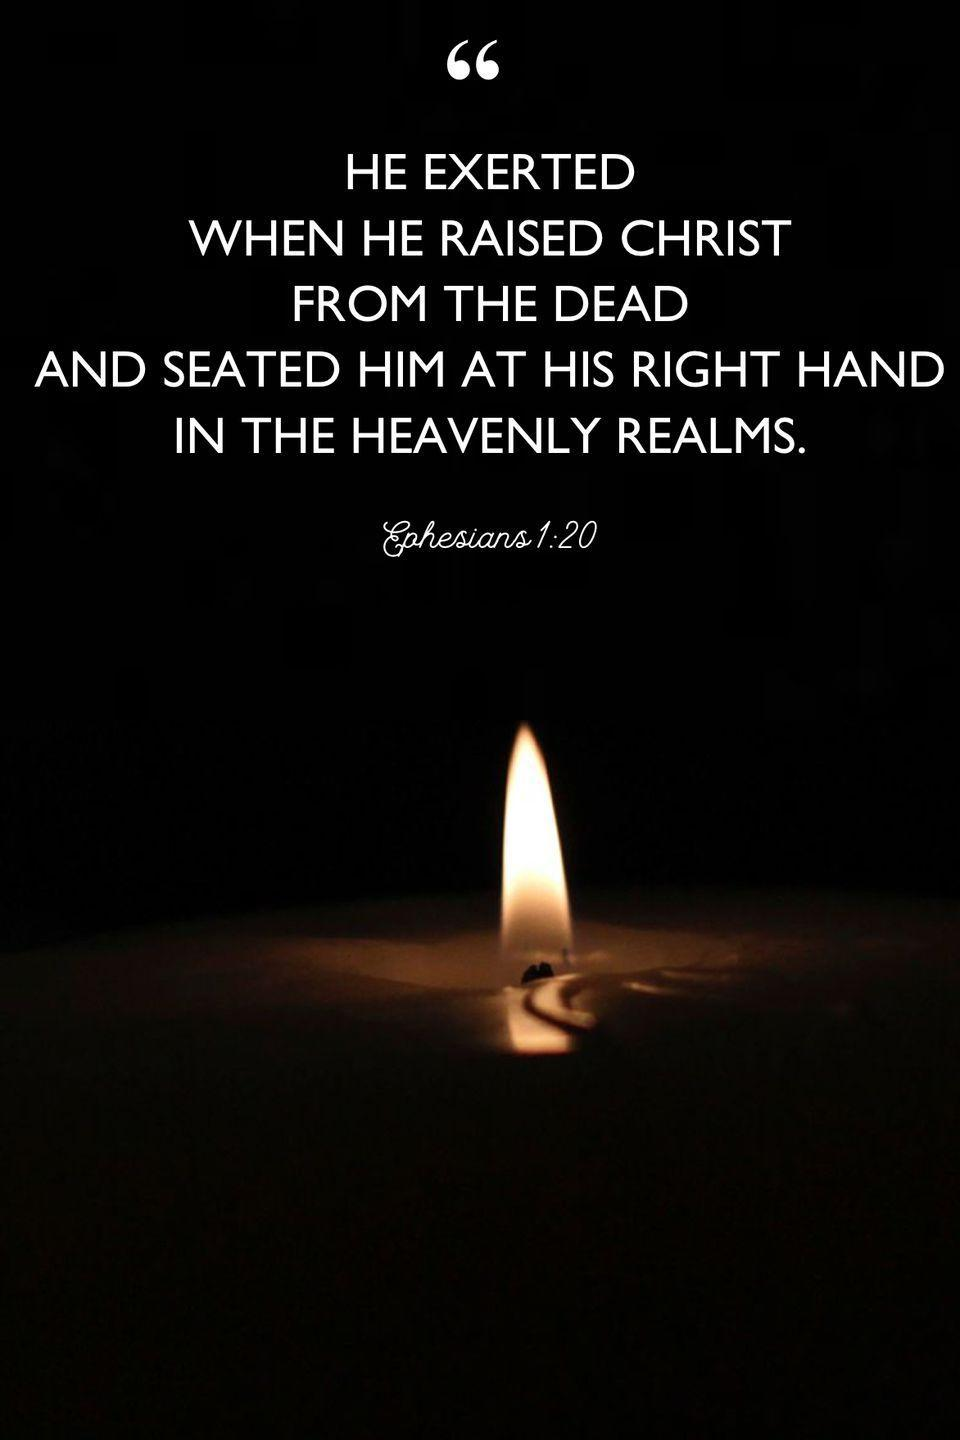 """<p>""""He exerted when he raised Christ from the dead and seated him at his right hand in the heavenly realms.""""</p>"""